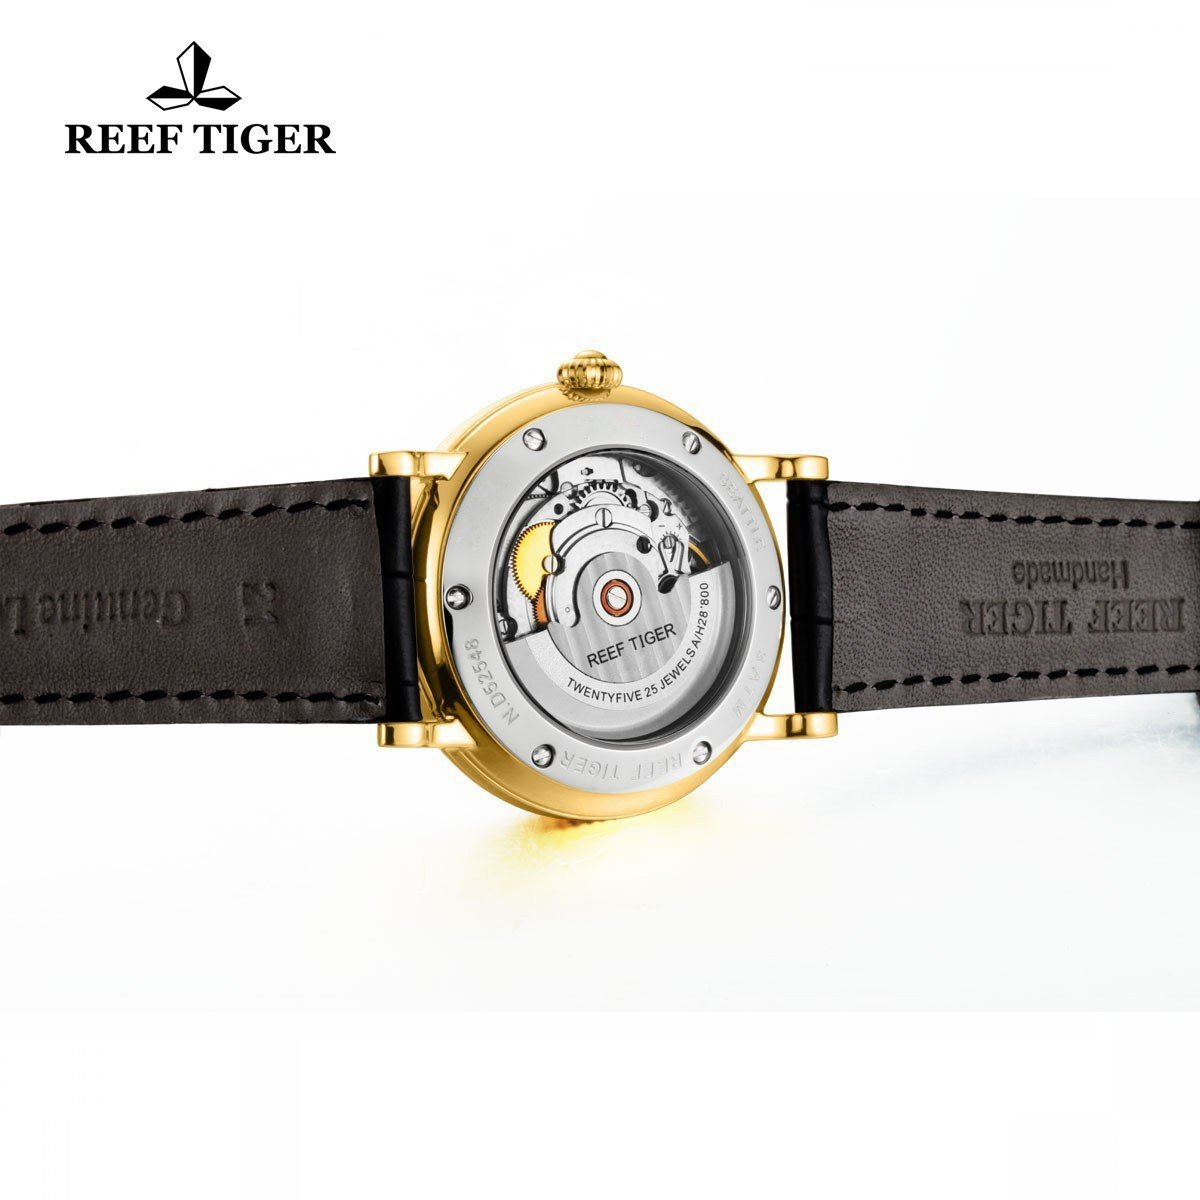 Reef Tiger Designer Dress Watches for Men Yellow Gold Case Leather Strap Date Automatic Watch RGA163 by REEF TIGER (Image #7)